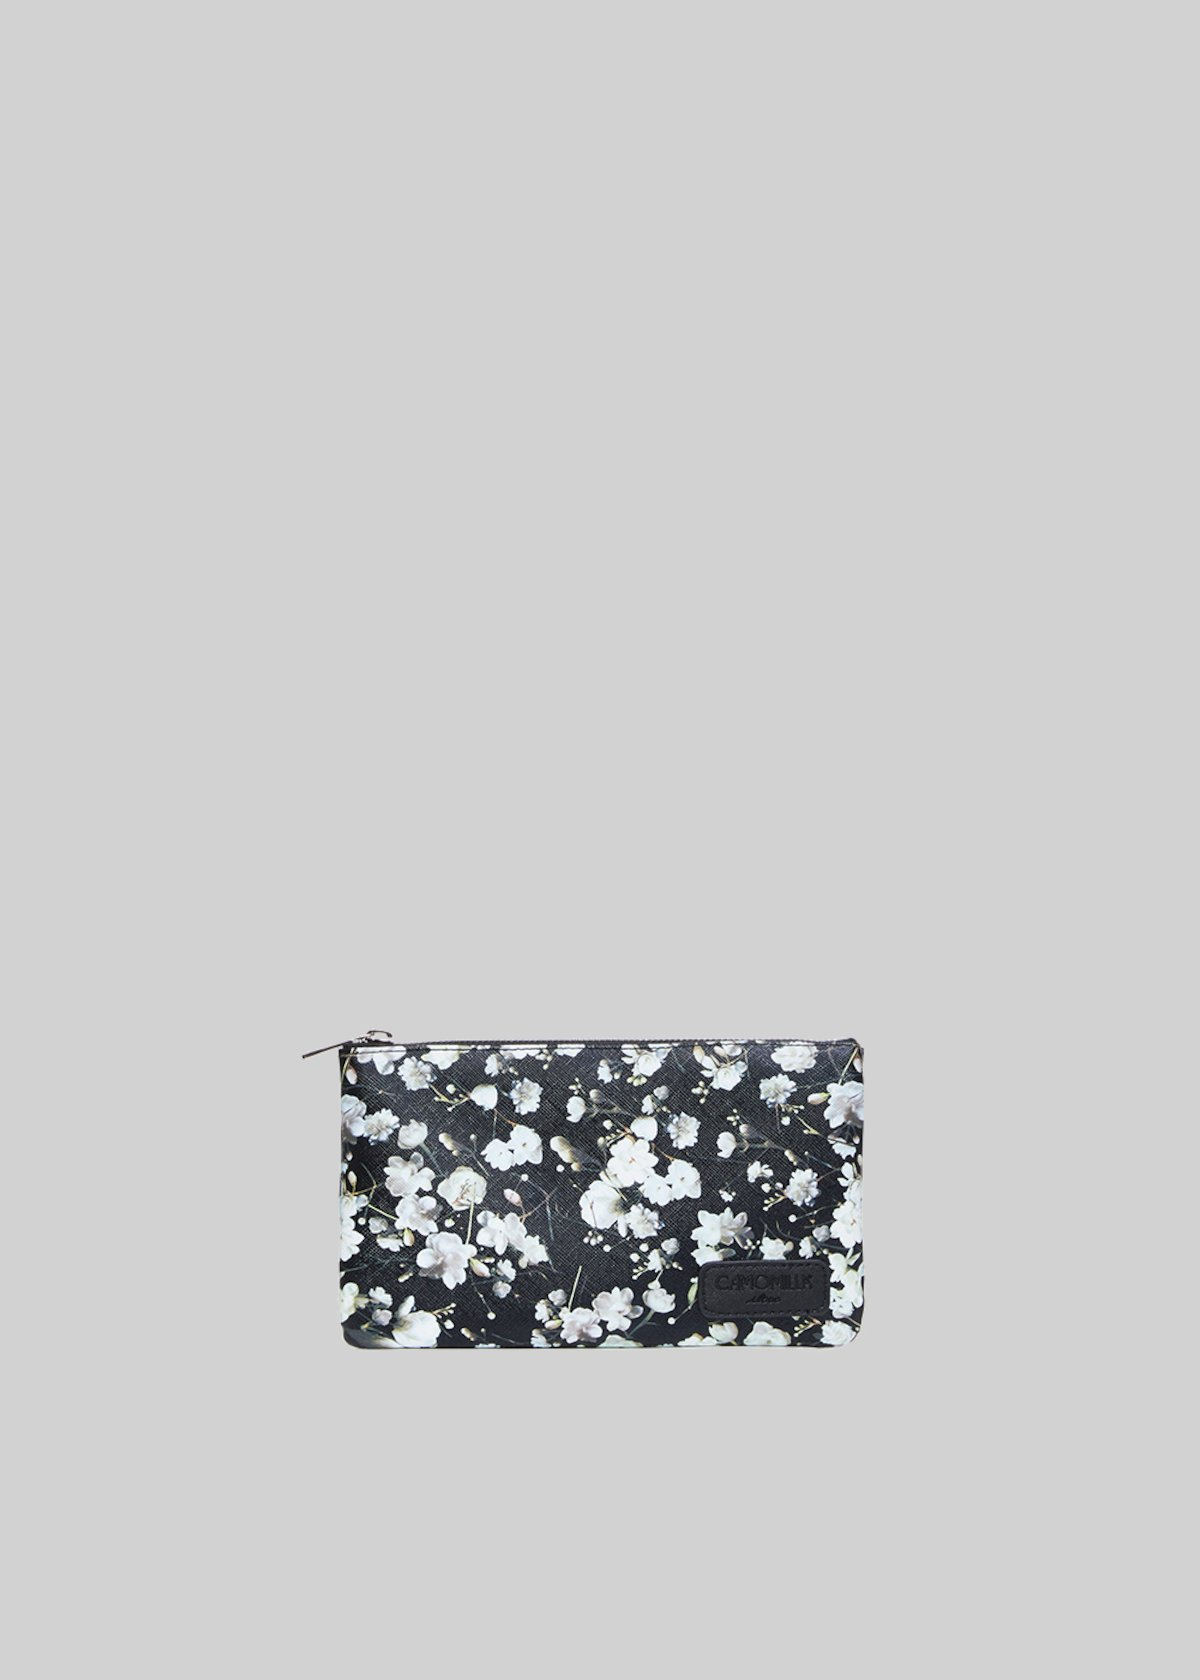 Pochette Tongaflo3 in faux leather peach flowers print with shoulder strap - Black Fantasia